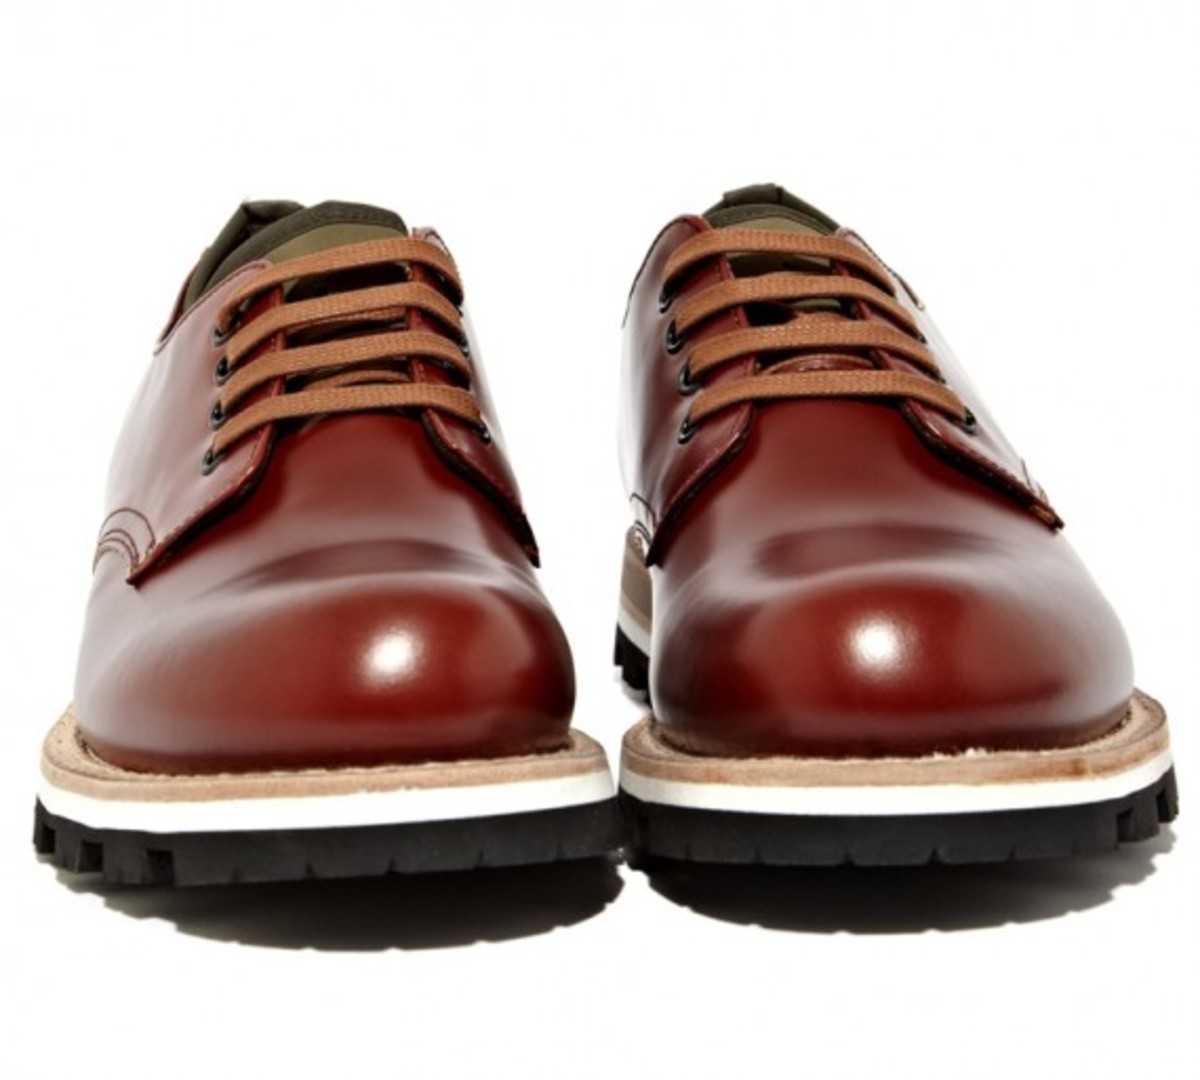 stussy-deluxe-be-positive-leather-shoes-03